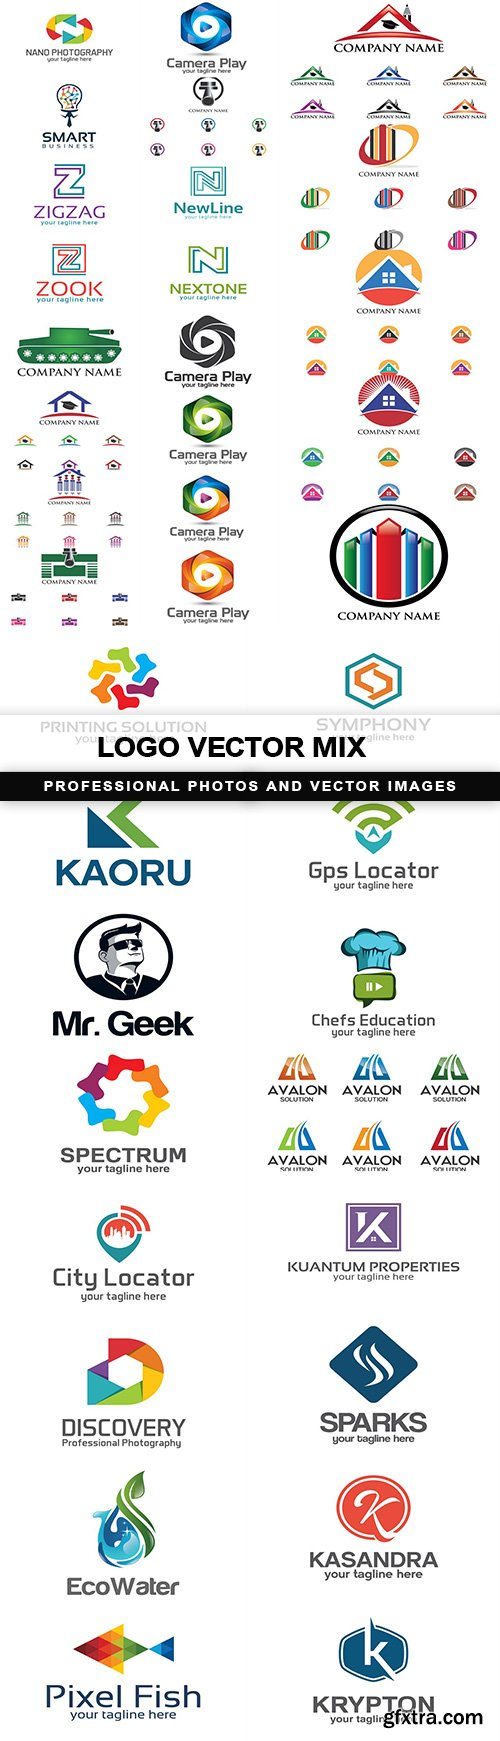 Logo vector mix